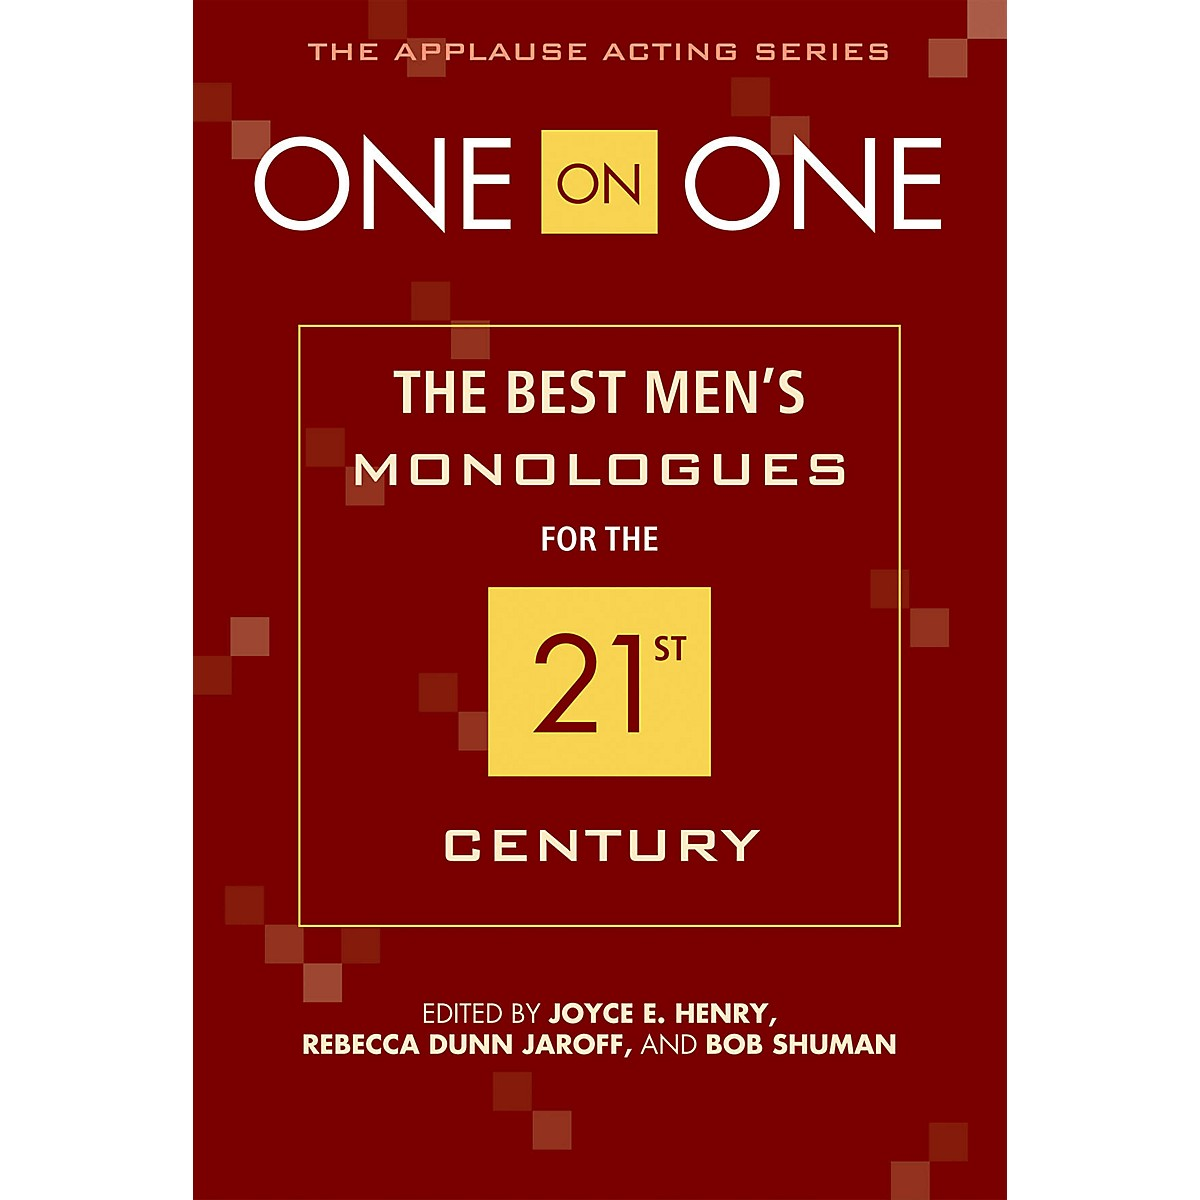 Applause Books One on One (The Best Men's Monologues for the 21st Century) Applause Acting Series Series Softcover